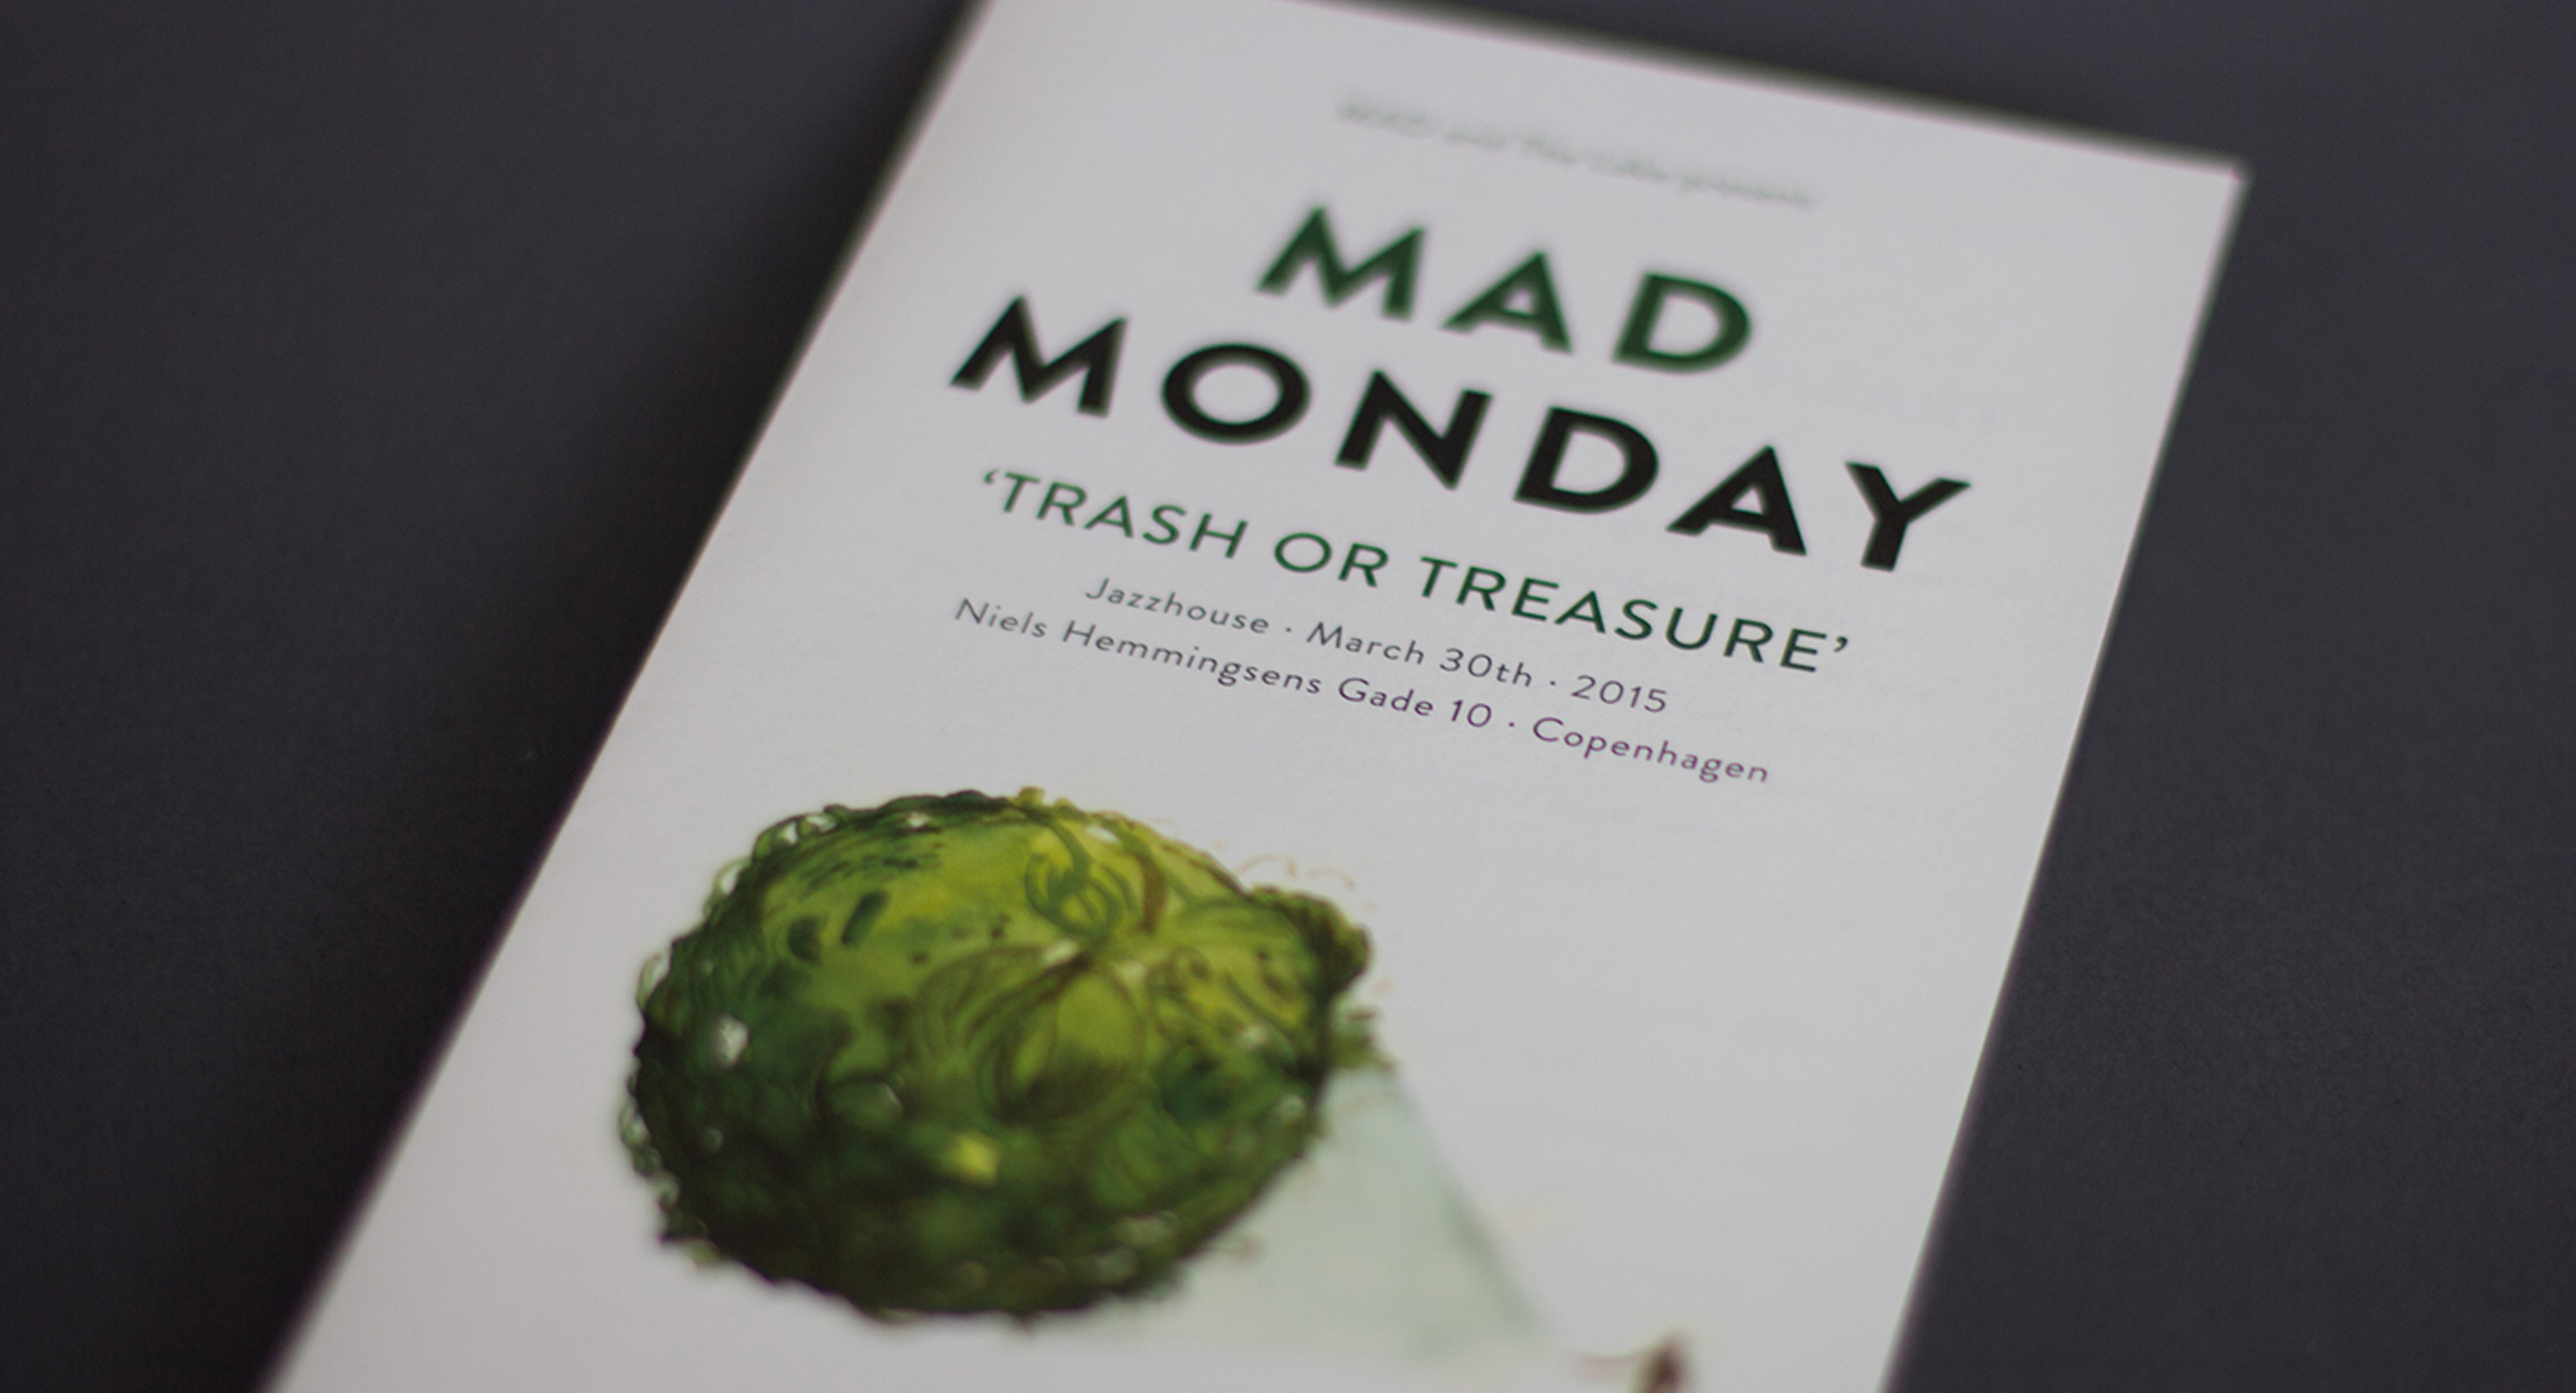 MAD_mondaycover